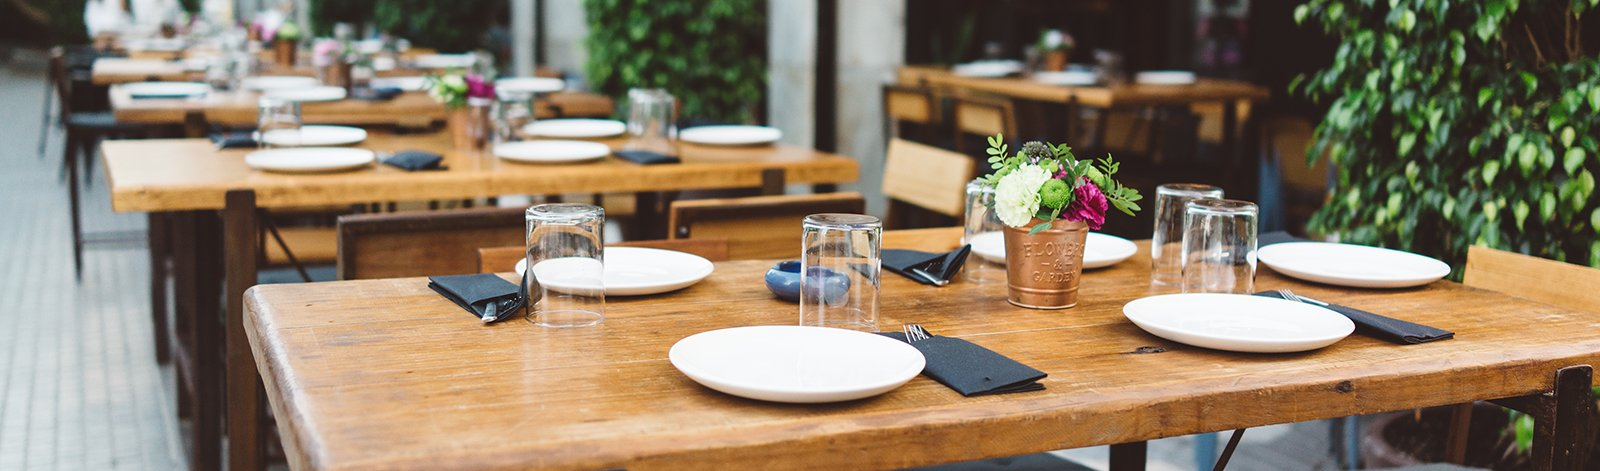 Dishes on the wooden table in outdoor restaurant